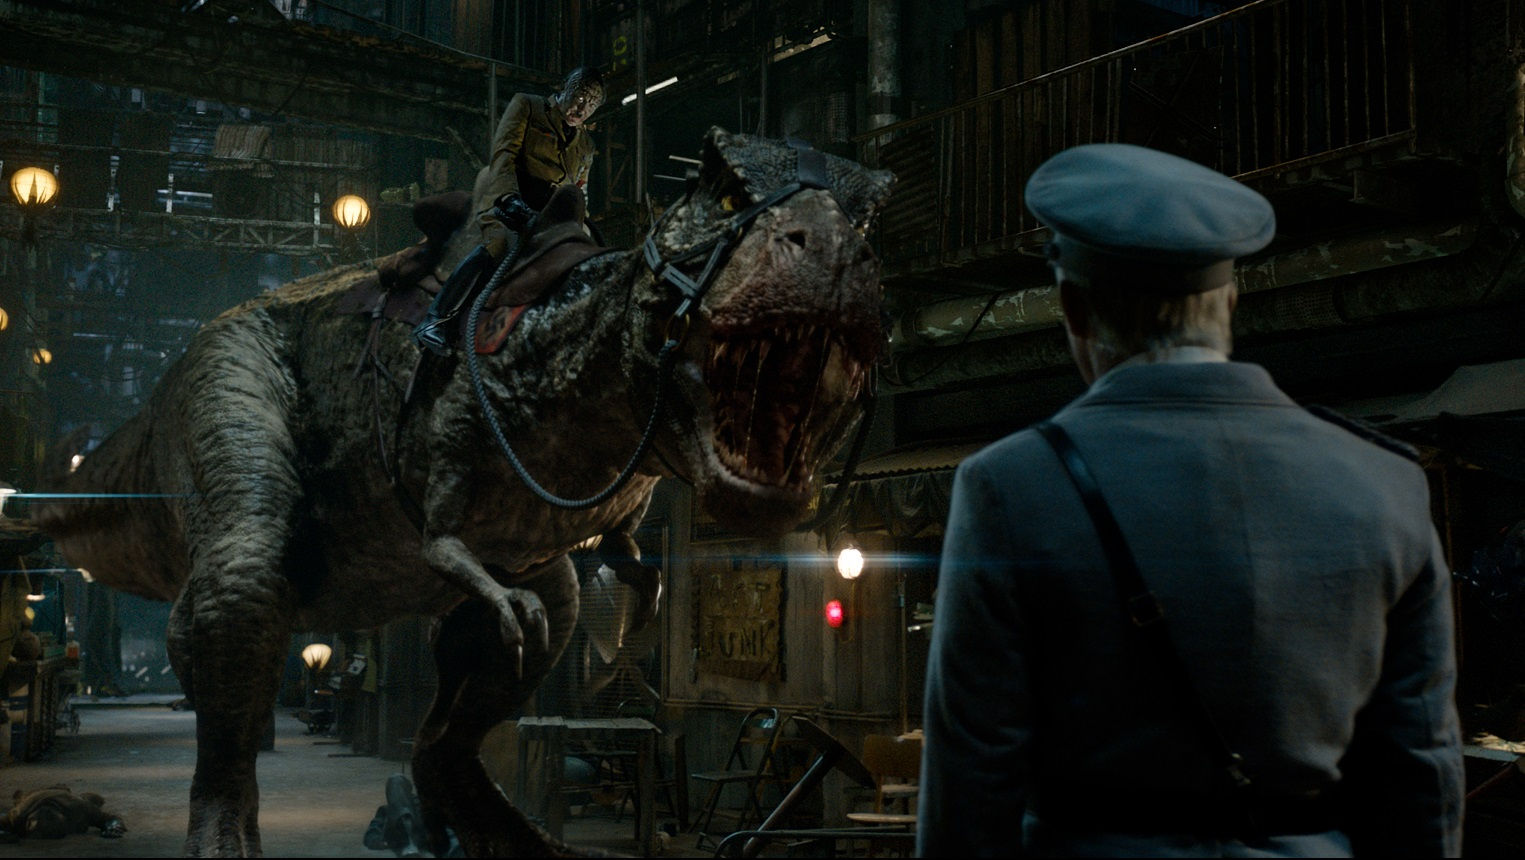 An alien lizard Adolf Hitler (Udo Kier) invades the moonbase riding on the back of a dinosaur in Iron Sky: The Coming Race (2019)